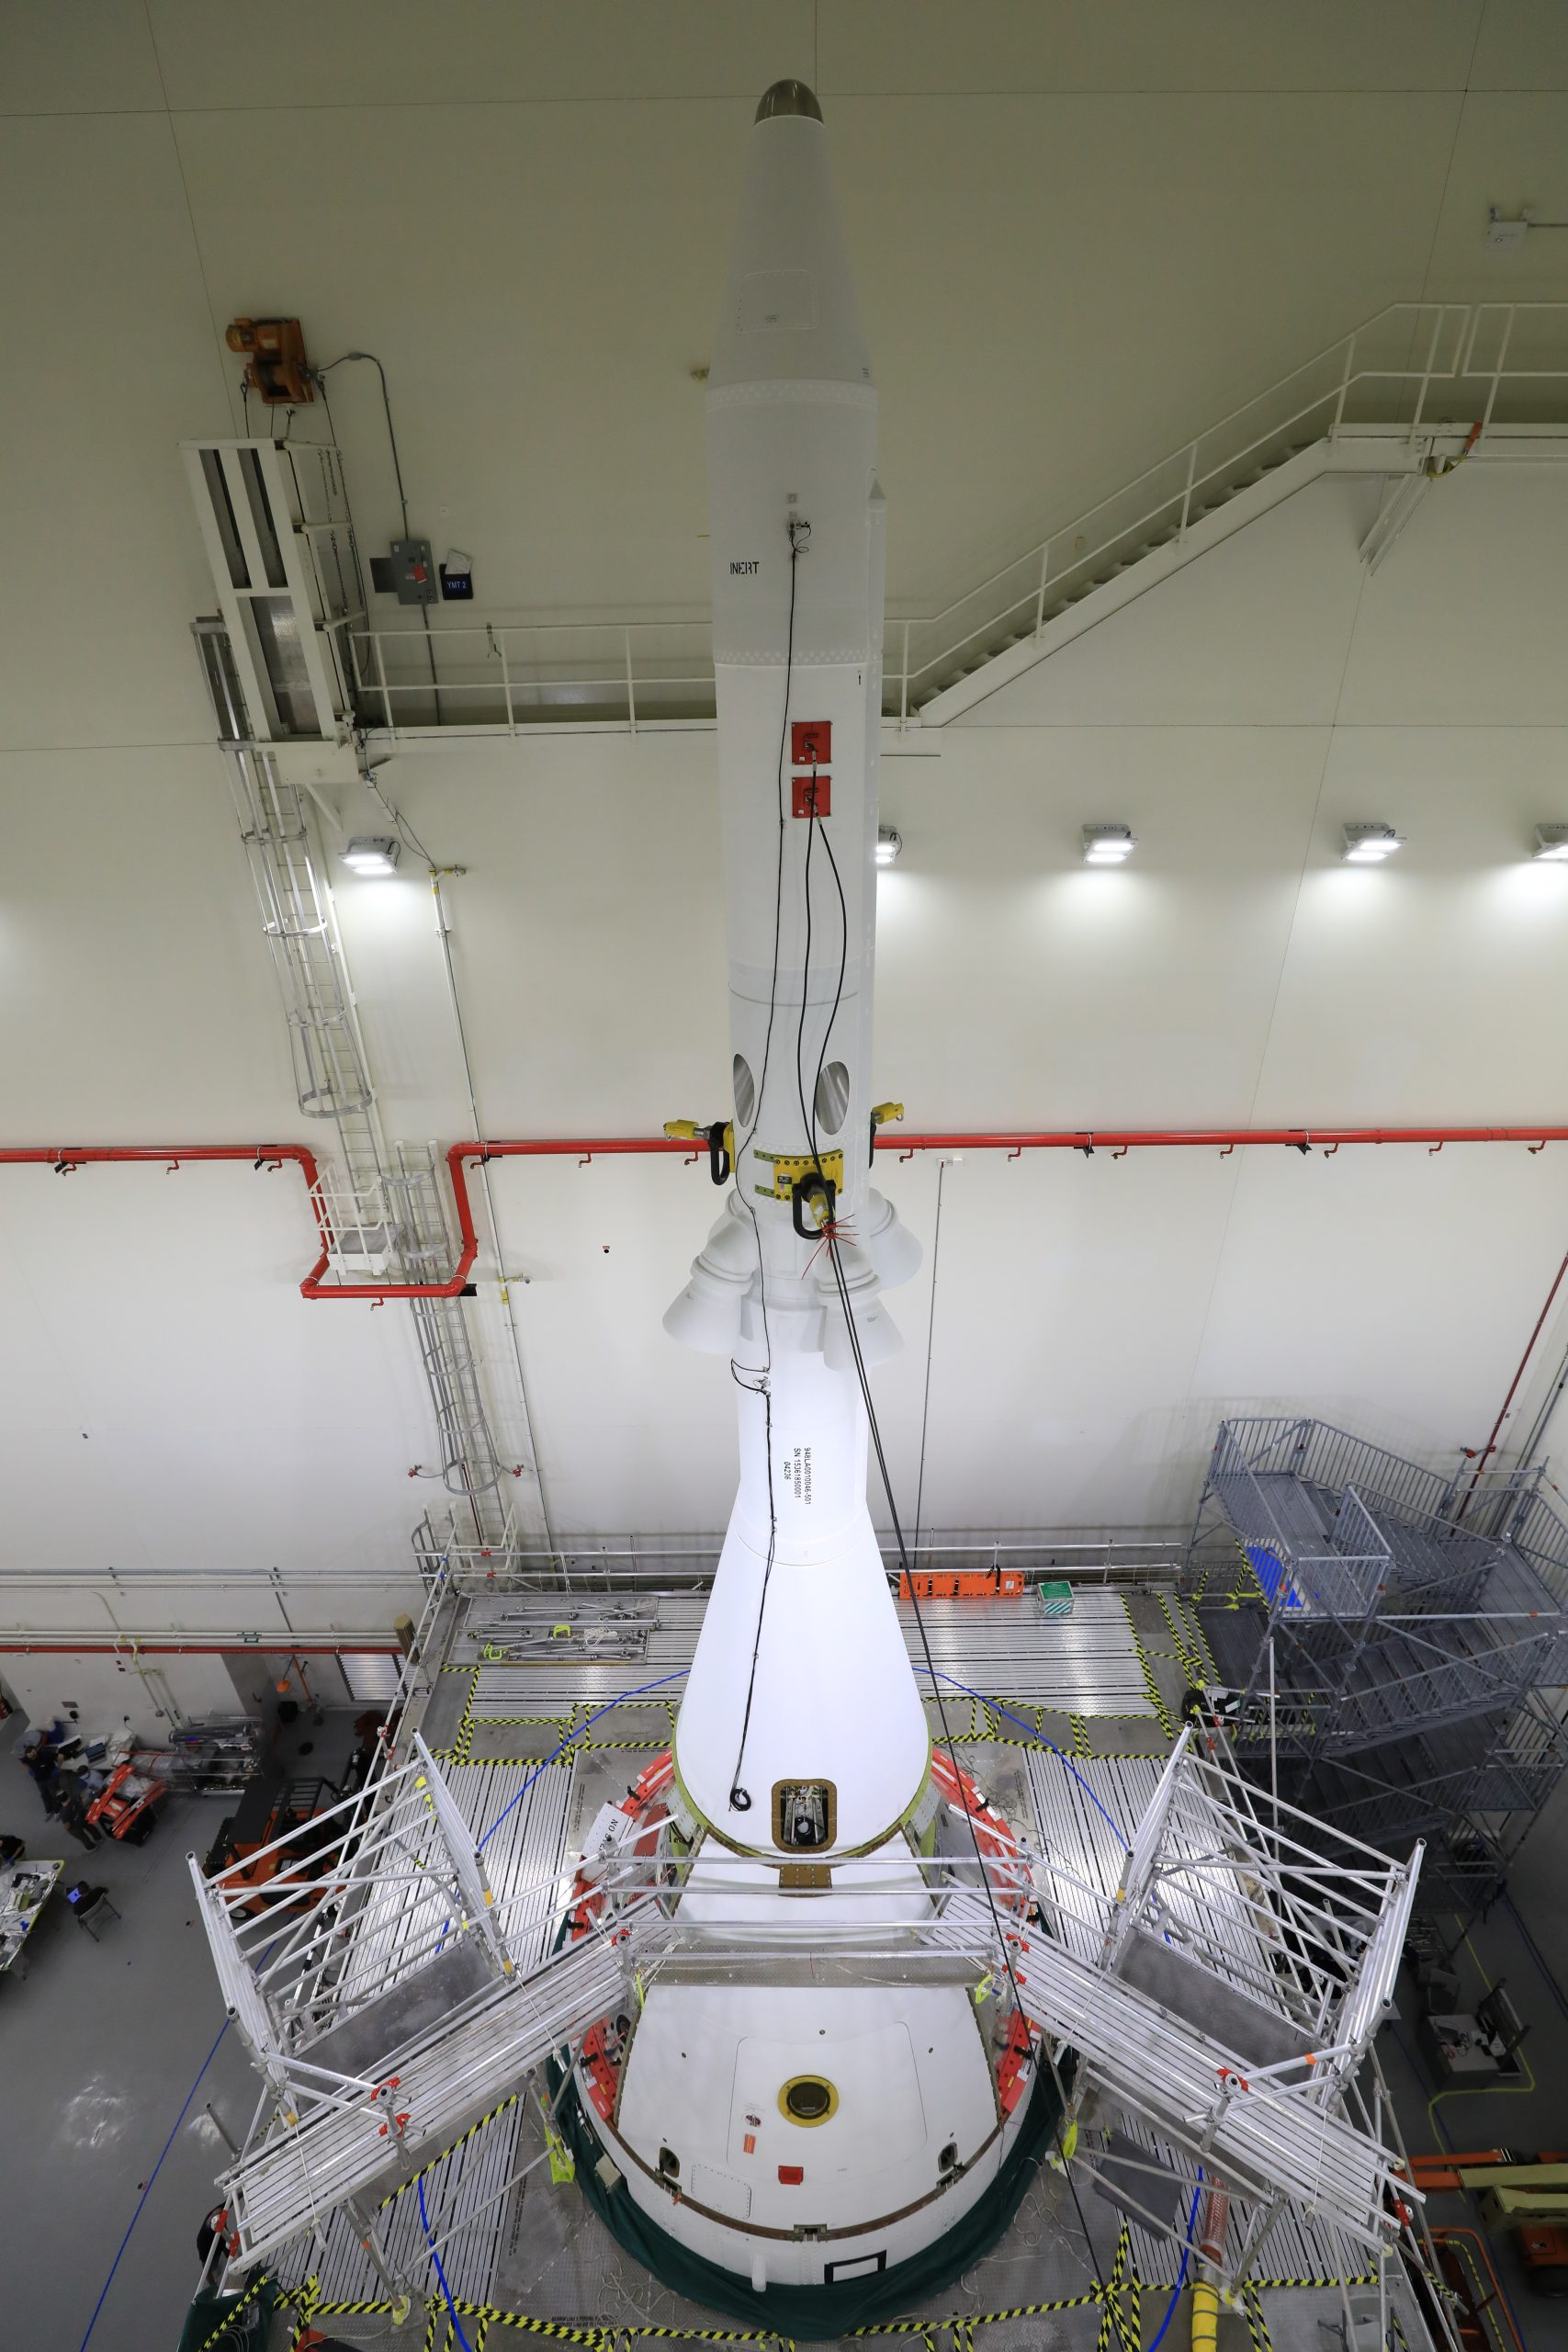 The four ogive fairings for the Orion Artemis I mission are installed on the launch abort system assembly inside the Launch Abort System Facility at NASA's Kennedy Space Center in Florida on Aug. 20, 2021.